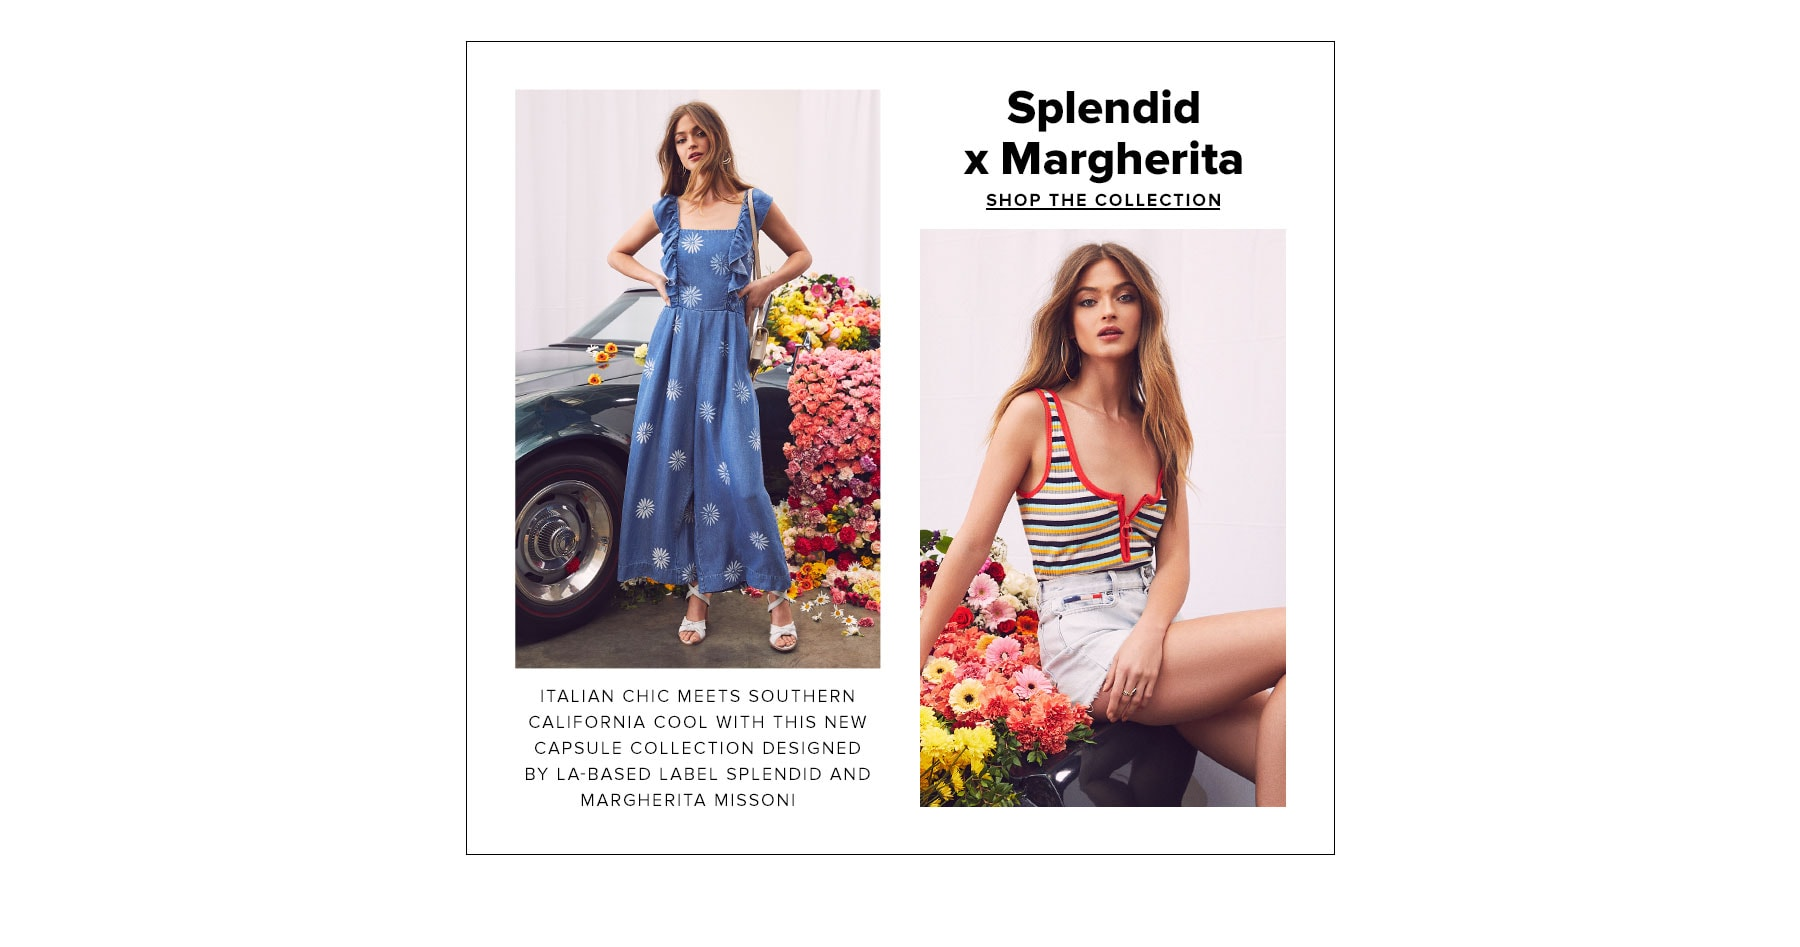 Splendid x Magherita. Italian chic meets southern california cool with this new capsule collection designed by la-based label splendid and Margherita Missoni. Shop the Collection.